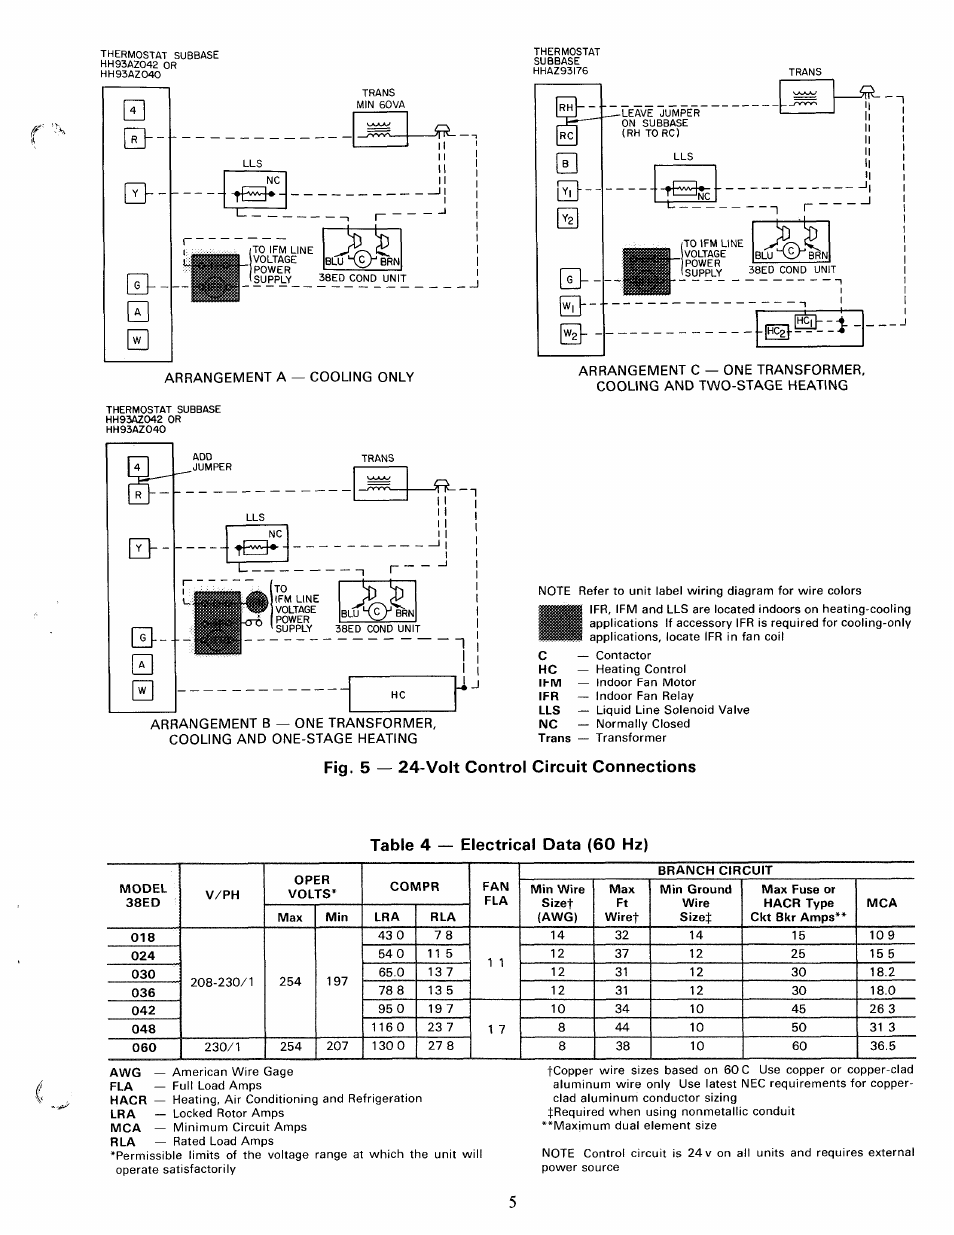 Fig 5 24 volt control circuit connections carrier 38ed user 5 24 volt control circuit connections carrier 38ed user manual page 5 12 keyboard keysfo Choice Image